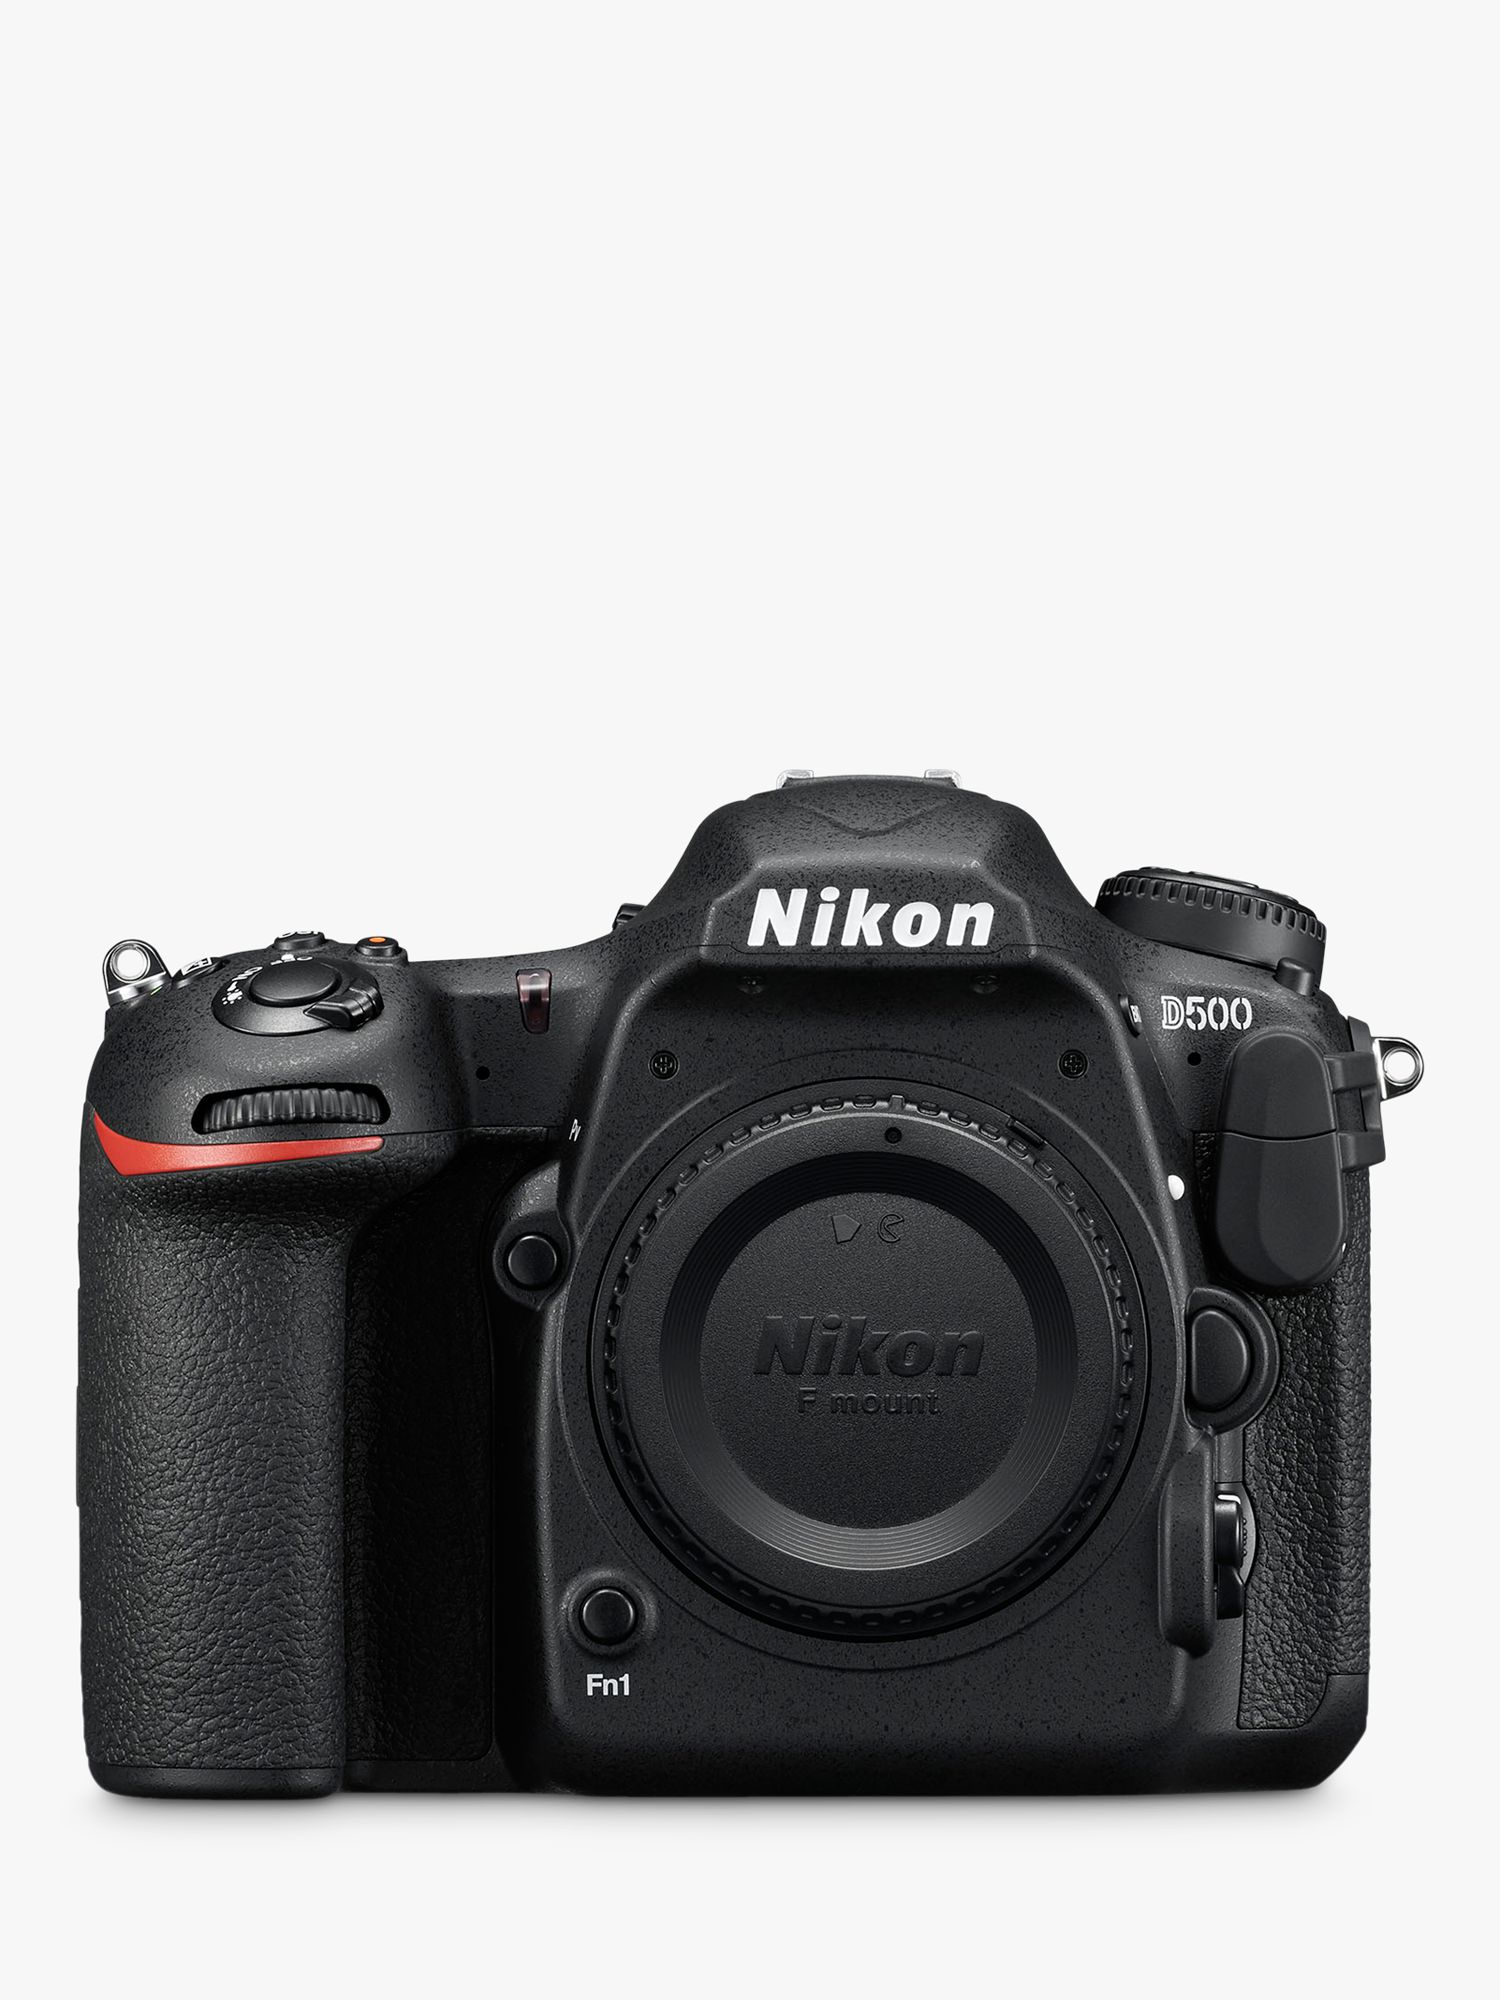 Nikon Nikon DX D500 Digital SLR Camera, 4K Ultra HD, 20.9MP, Wi-Fi/Bluetooth/NFC With 3.2 Tiltable Touch Screen, Black, Body Only